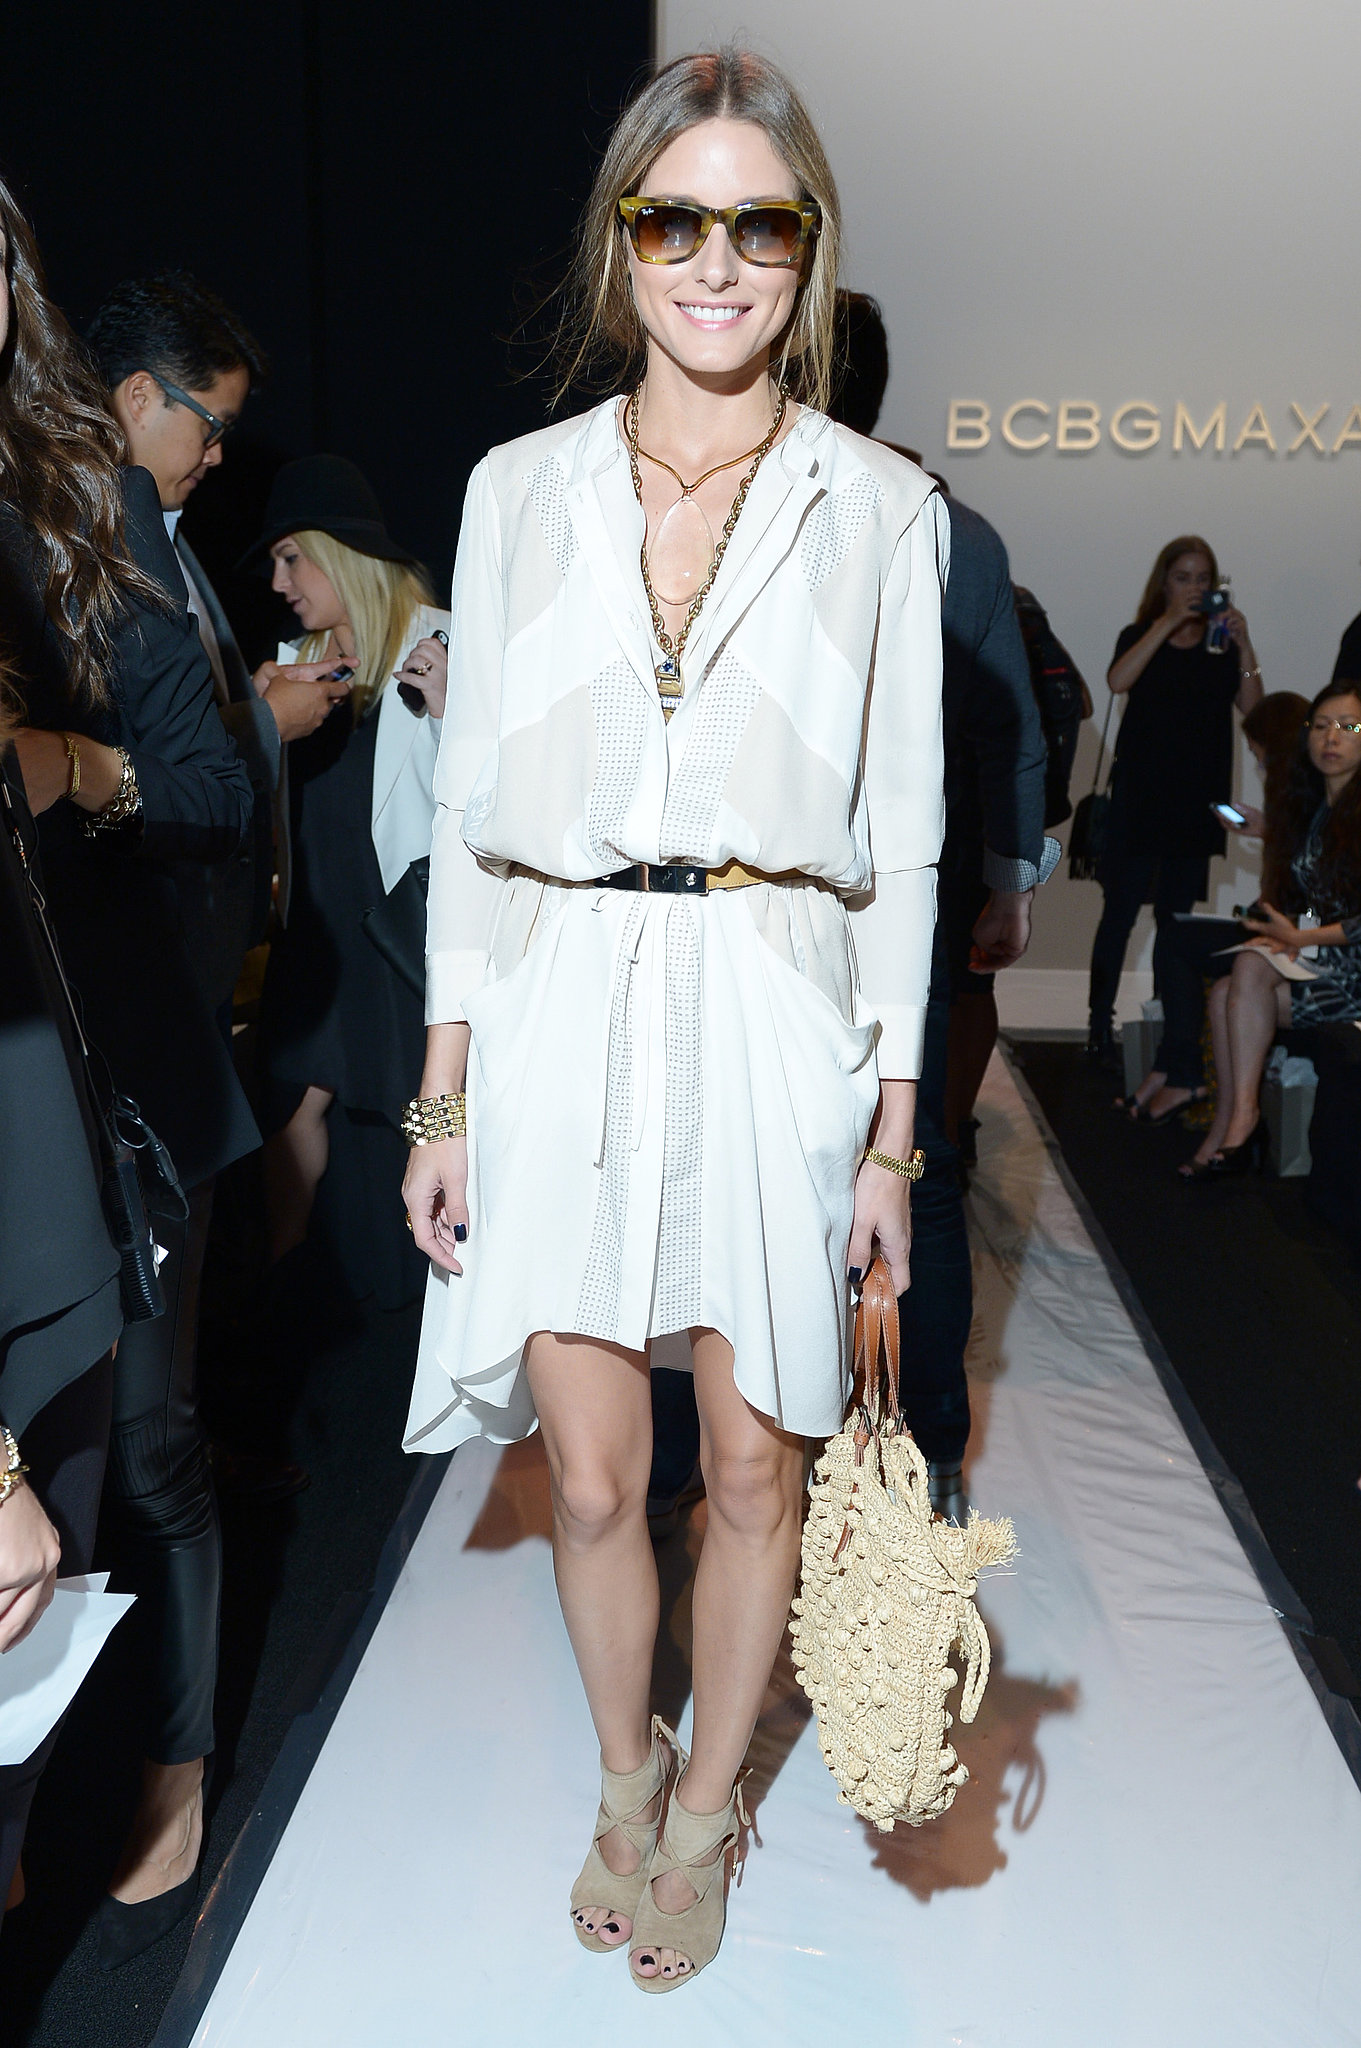 Olivia-Palermo-hit-BCBG-Max-Azria-looking-fresh-white-BCBG-Max